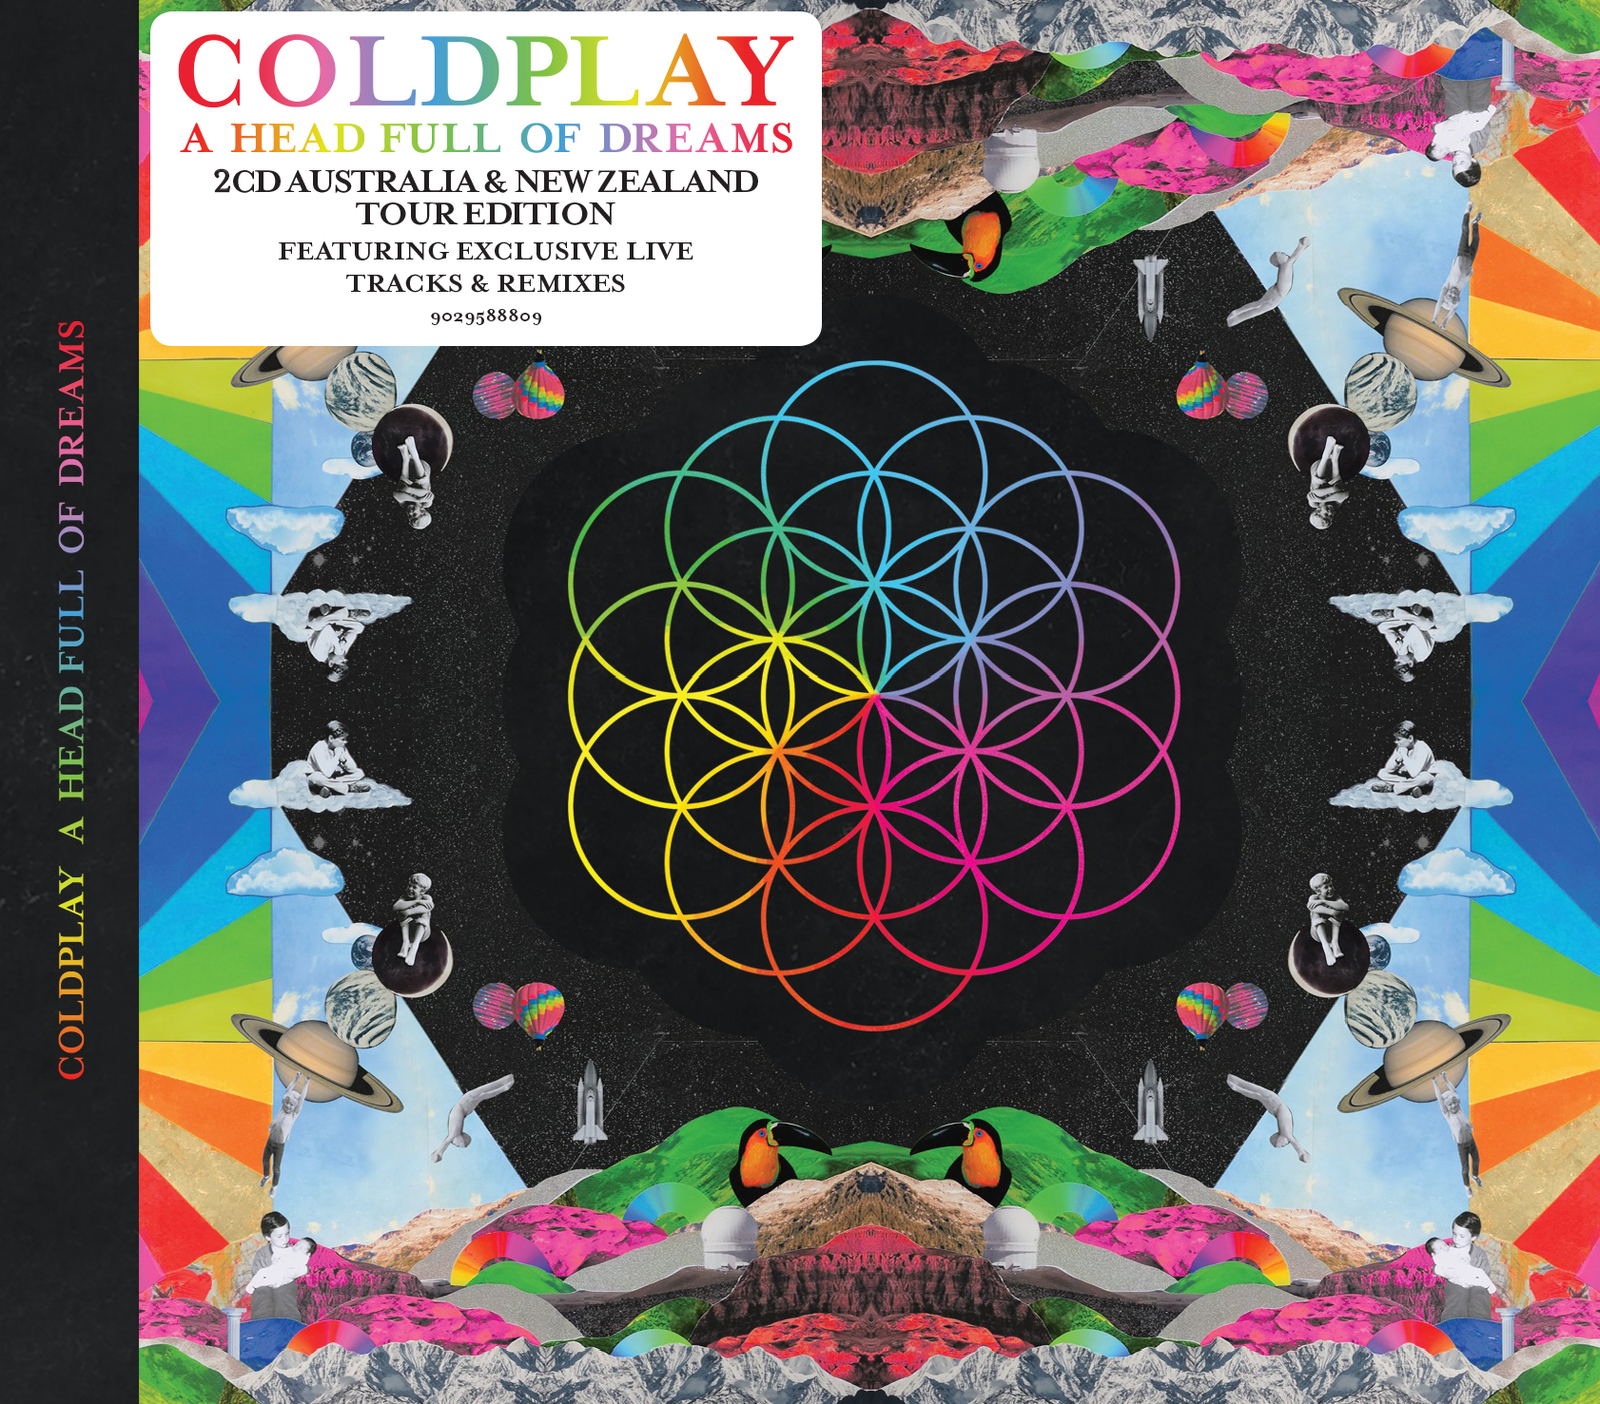 A Head Full Of Dreams - Tour Edition (2CD) by Coldplay image